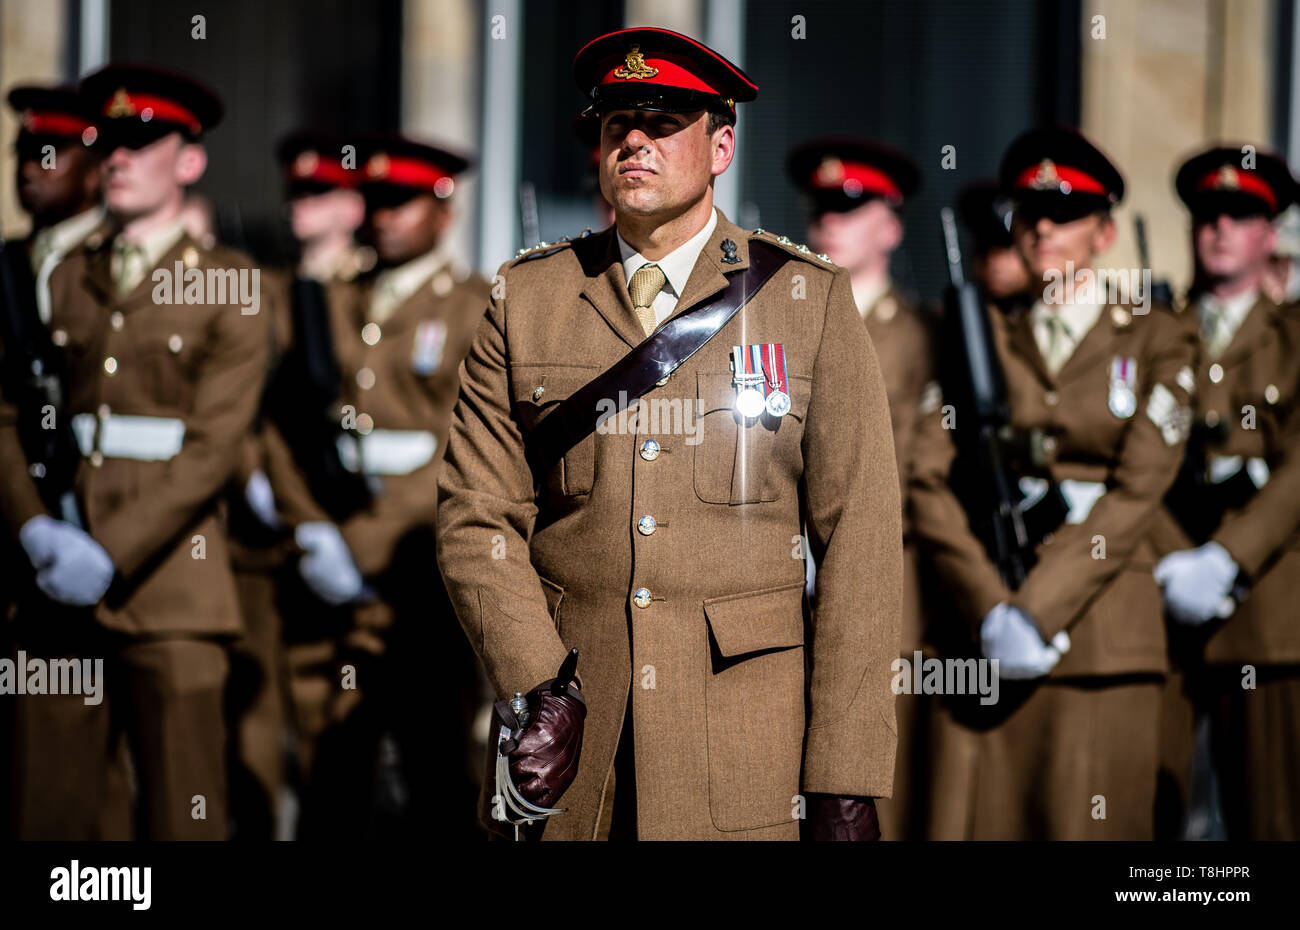 Gütersloh, Germany. 13th May 2019. An order of a British soldier shines from the sun at the farewell on the town hall square in Gütersloh. The stationed British armed forces bid farewell in Gütersloh with a parade. Photo: Guido Kirchner/dpa Credit: dpa picture alliance/Alamy Live News - Stock Image